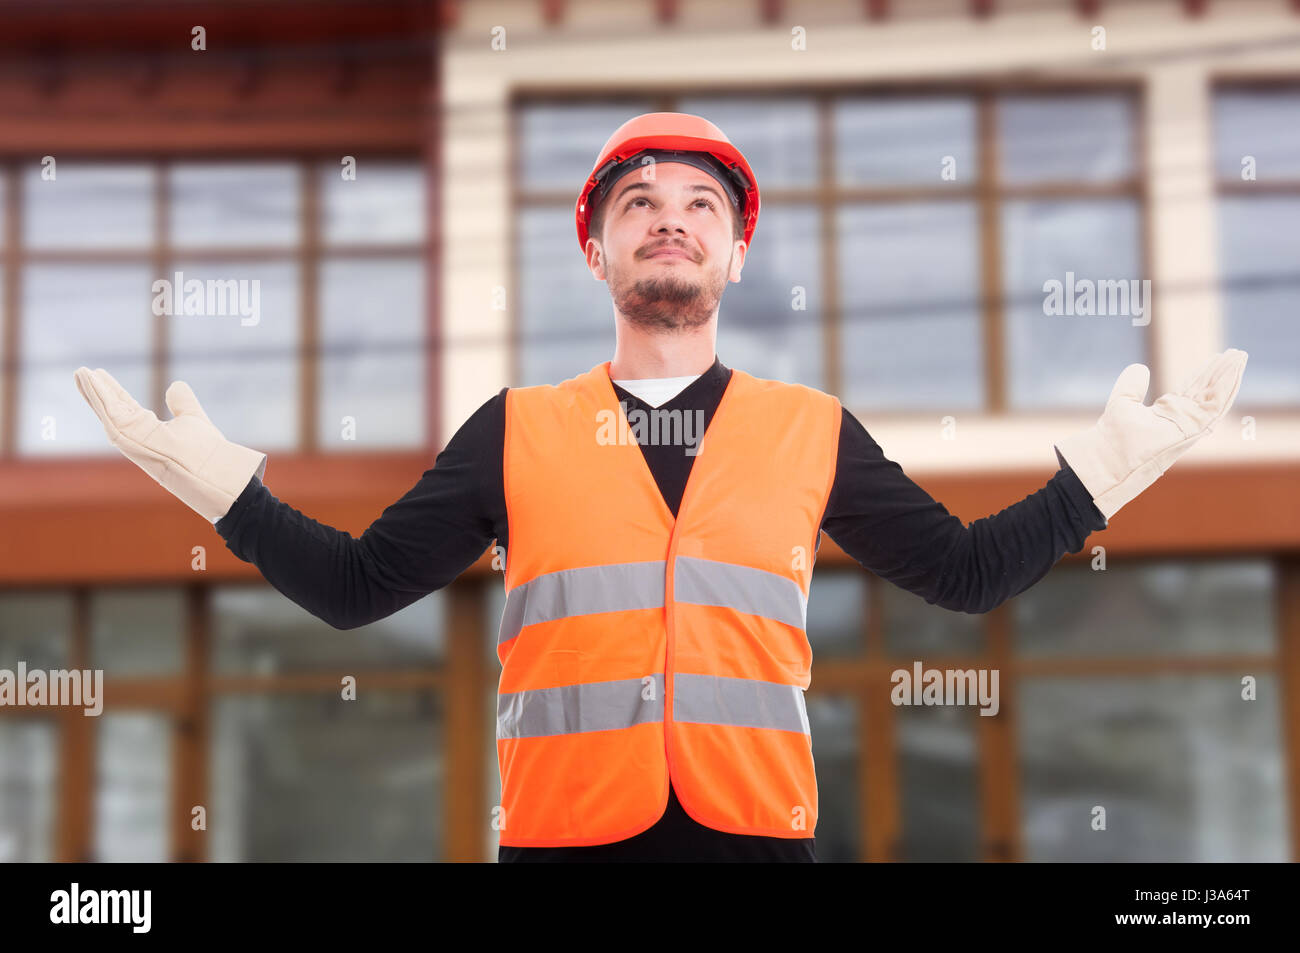 Self-confident construction worker rising his hands up as satisfaction concept - Stock Image